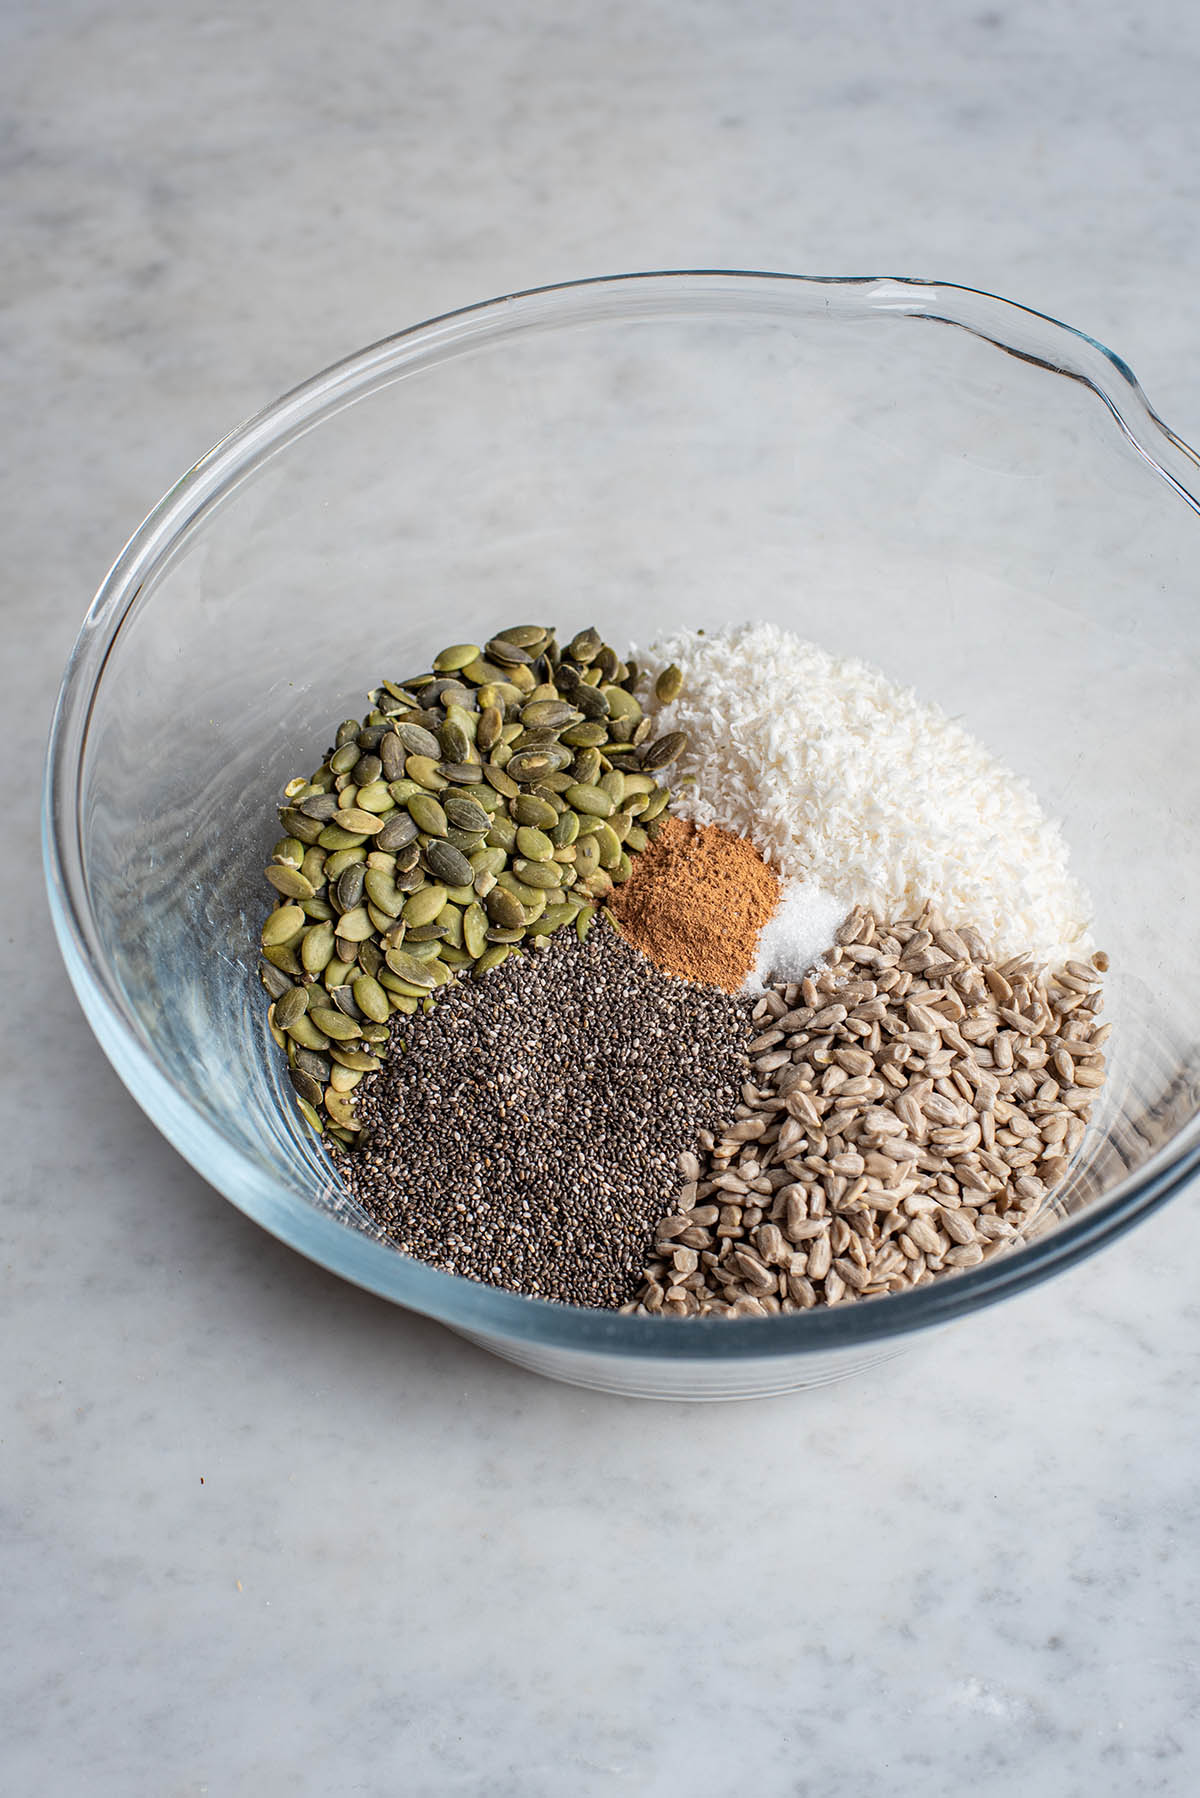 Dry ingredients for granola in a large glass bowl.